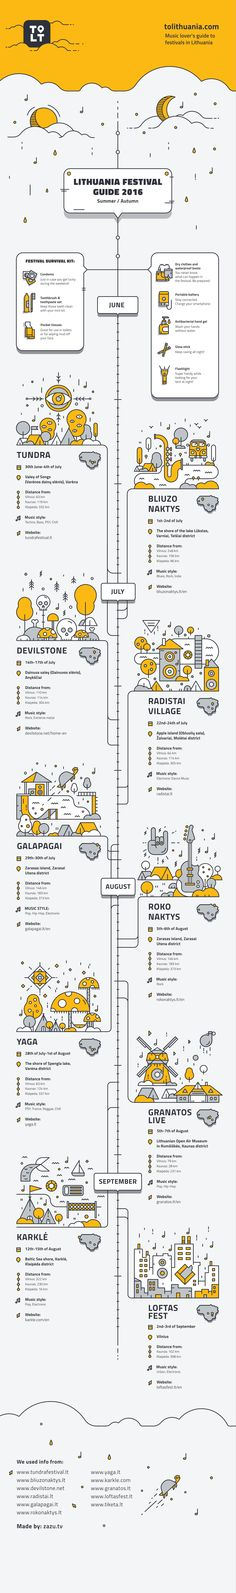 Infographic - Infographic Design Inspiration - Lithuania Festival Guide on Behance Infographic Design : – Picture : – Description Lithuania Festival Guide on Behance -Read More – Design Sites, Graphisches Design, Layout Design, Timeline Infographic, Infographic Education, Infographic Website, Festival Guide, Journey Mapping, Timeline Design